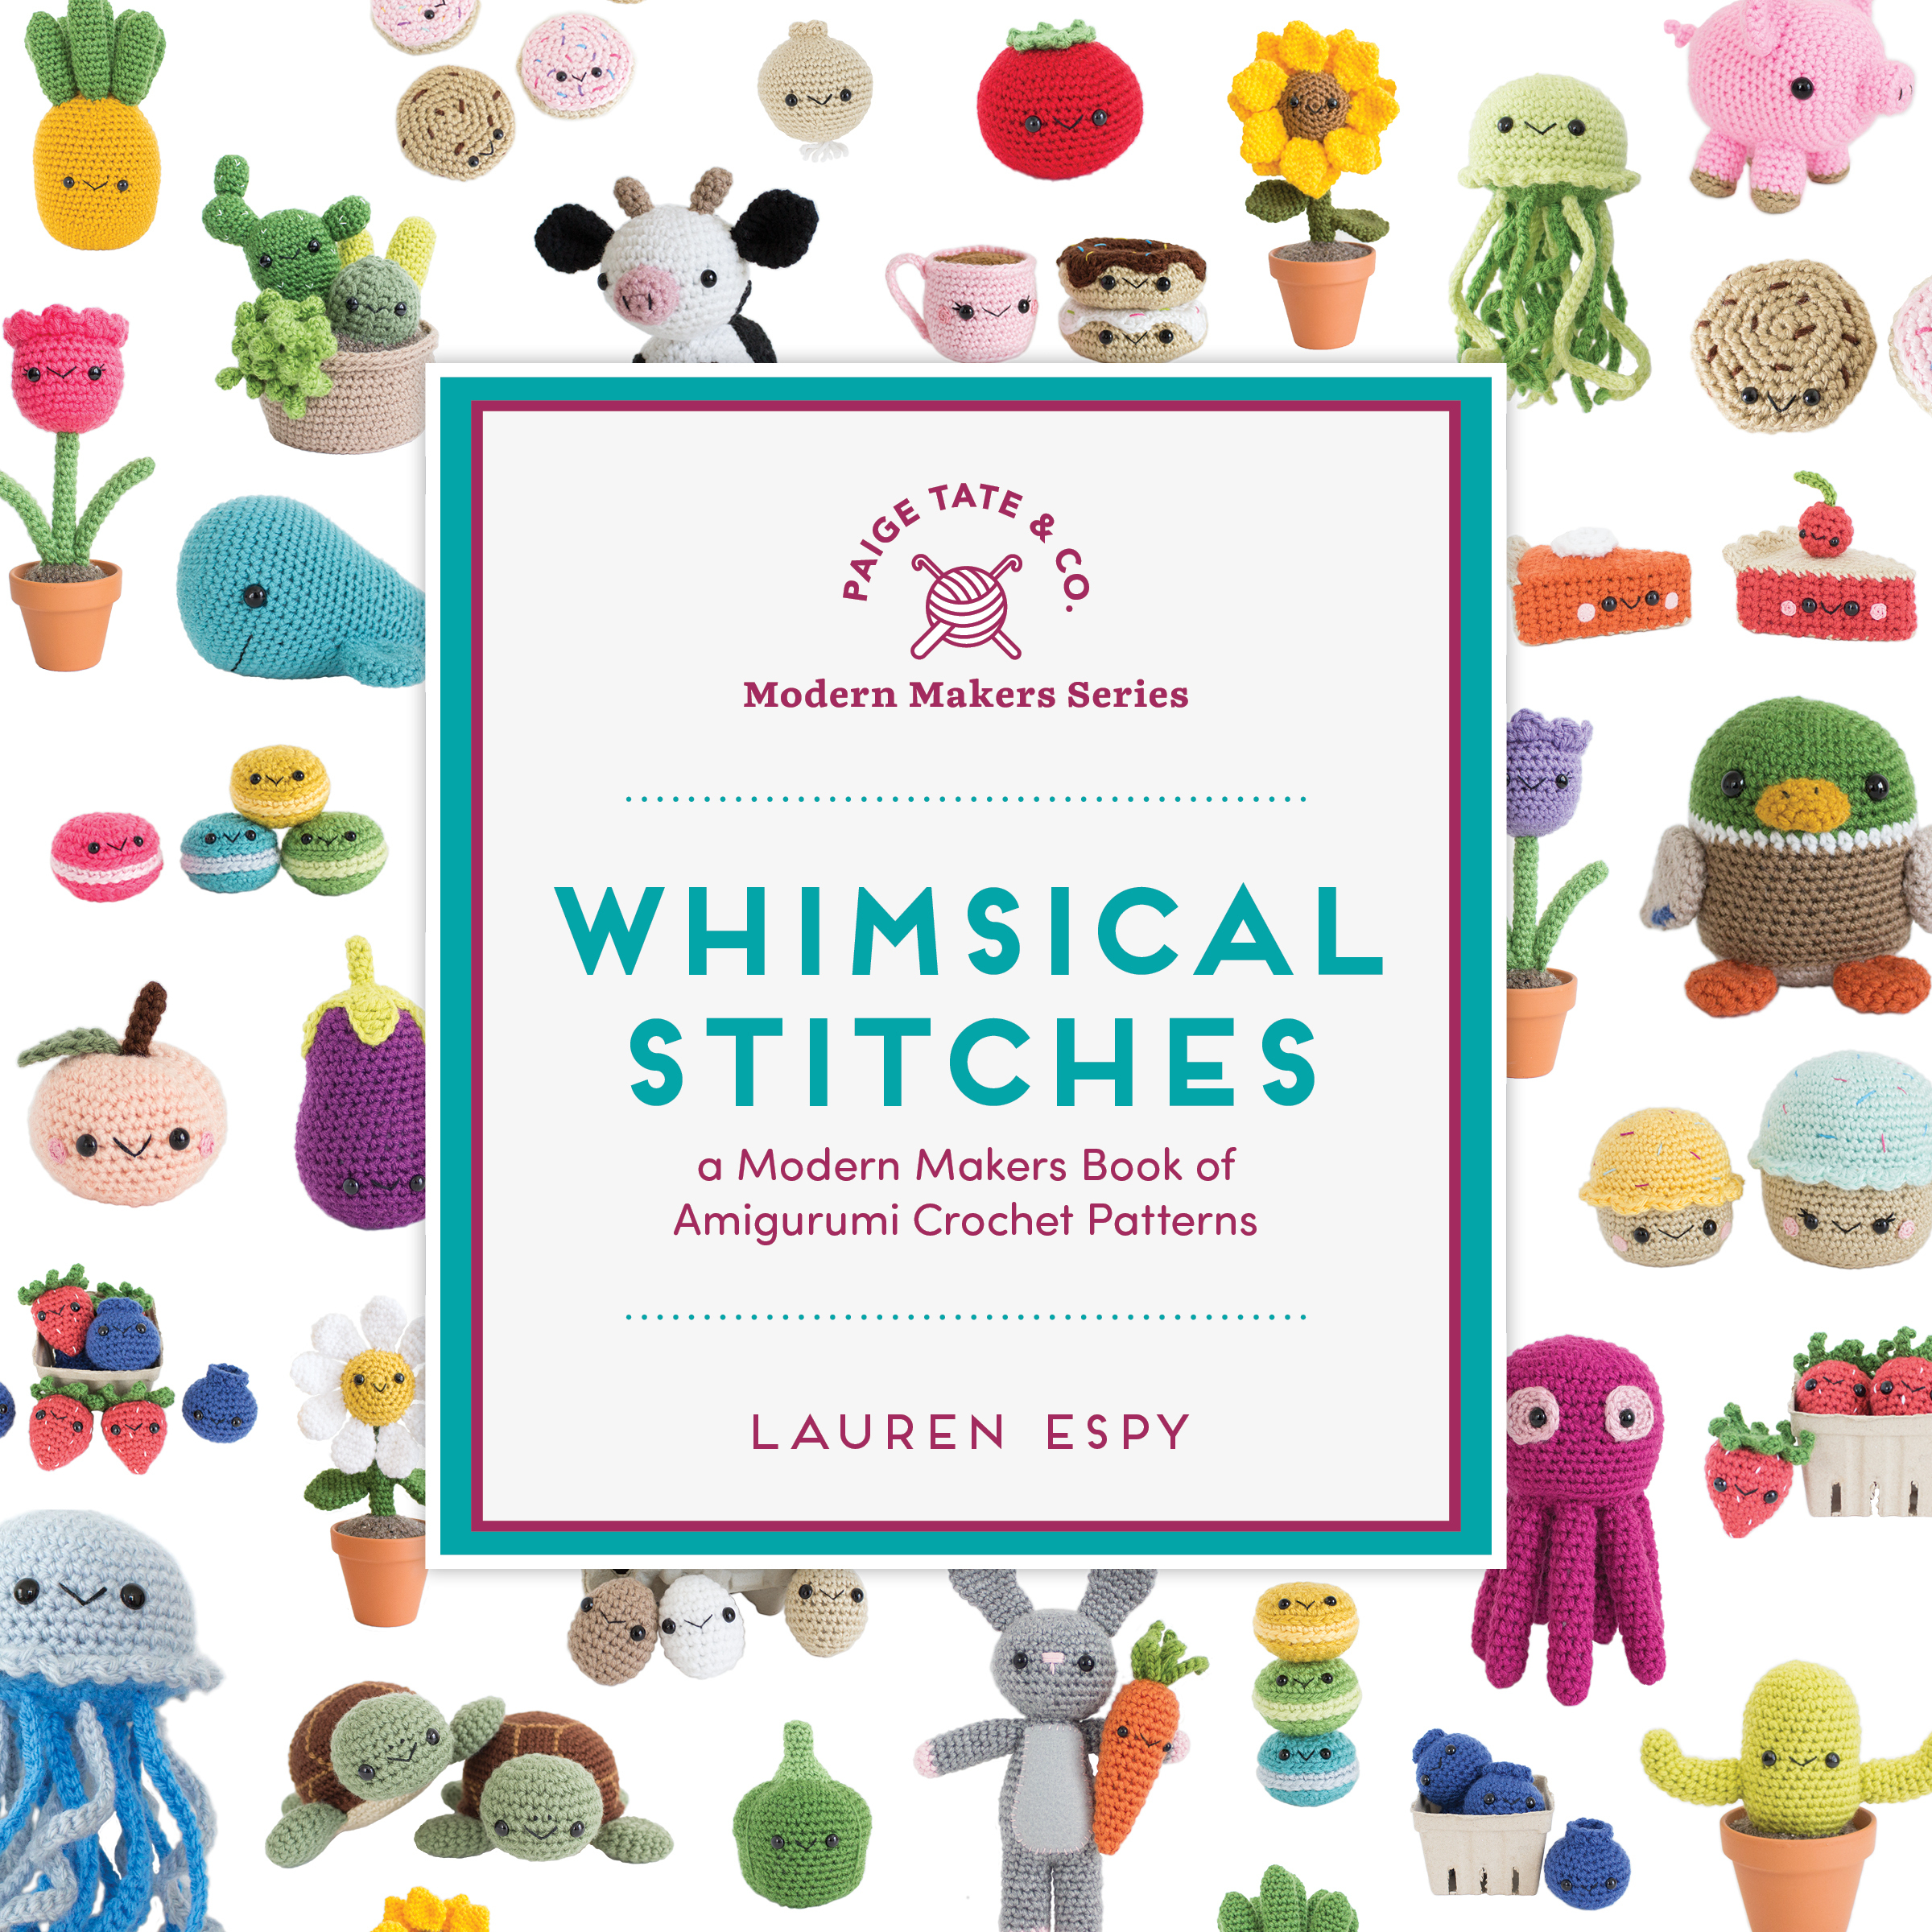 f0590bf178f95 Whimsical Stitches by Lauren Espy